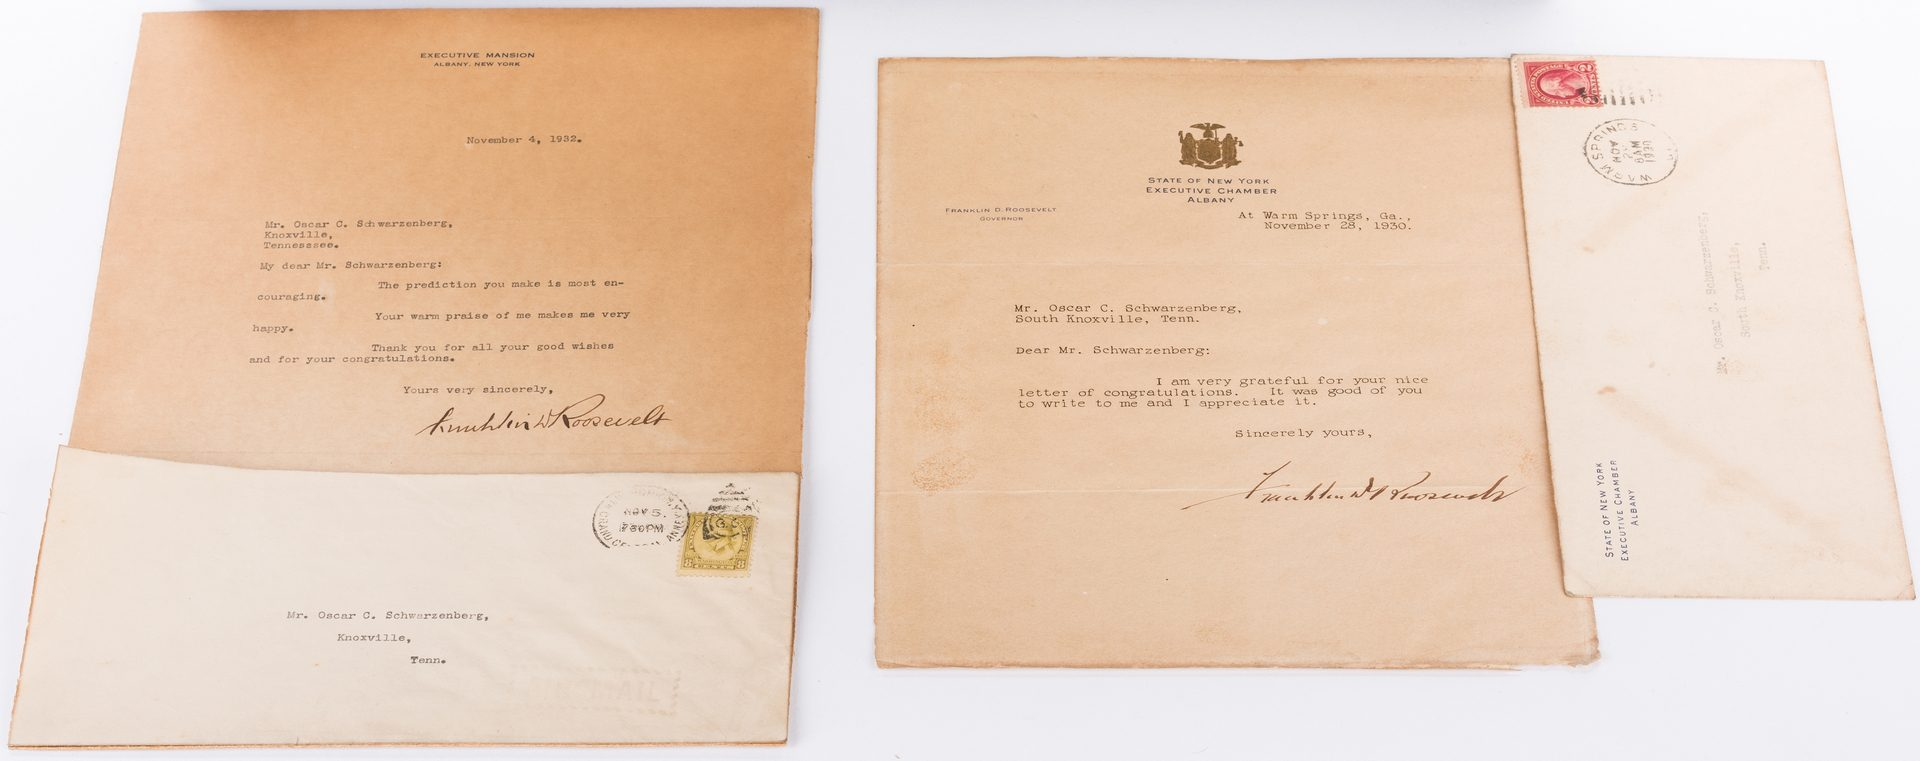 Lot 253: 3 FDR Items, inc. 2 Signed Letters